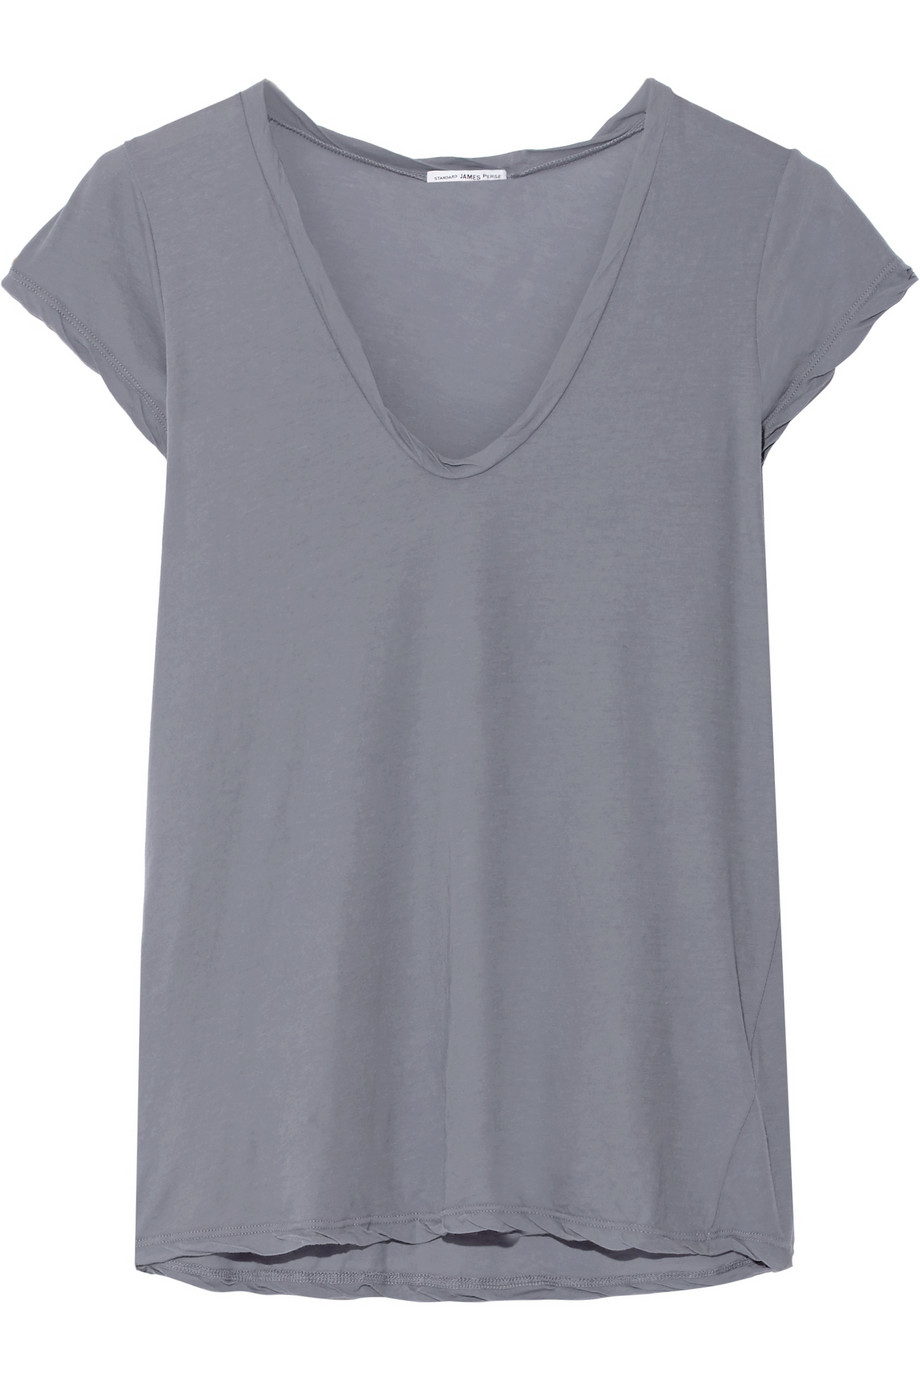 James perse cotton jersey t shirt in blue lyst for James perse t shirts sale